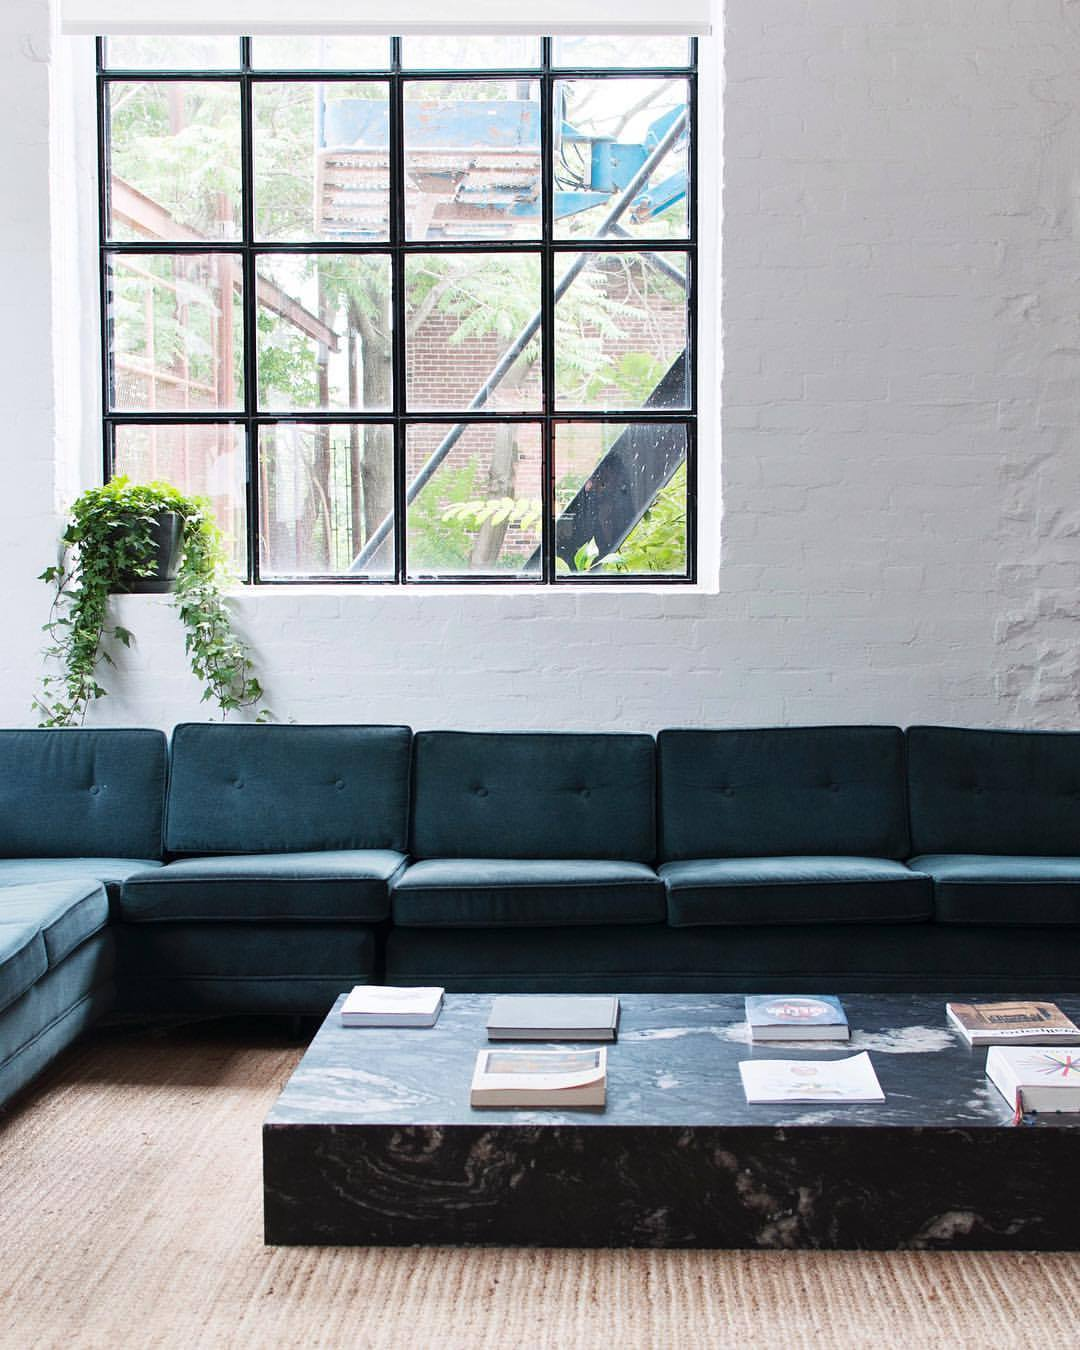 GREEN_LOUNGE_COUCH.jpg